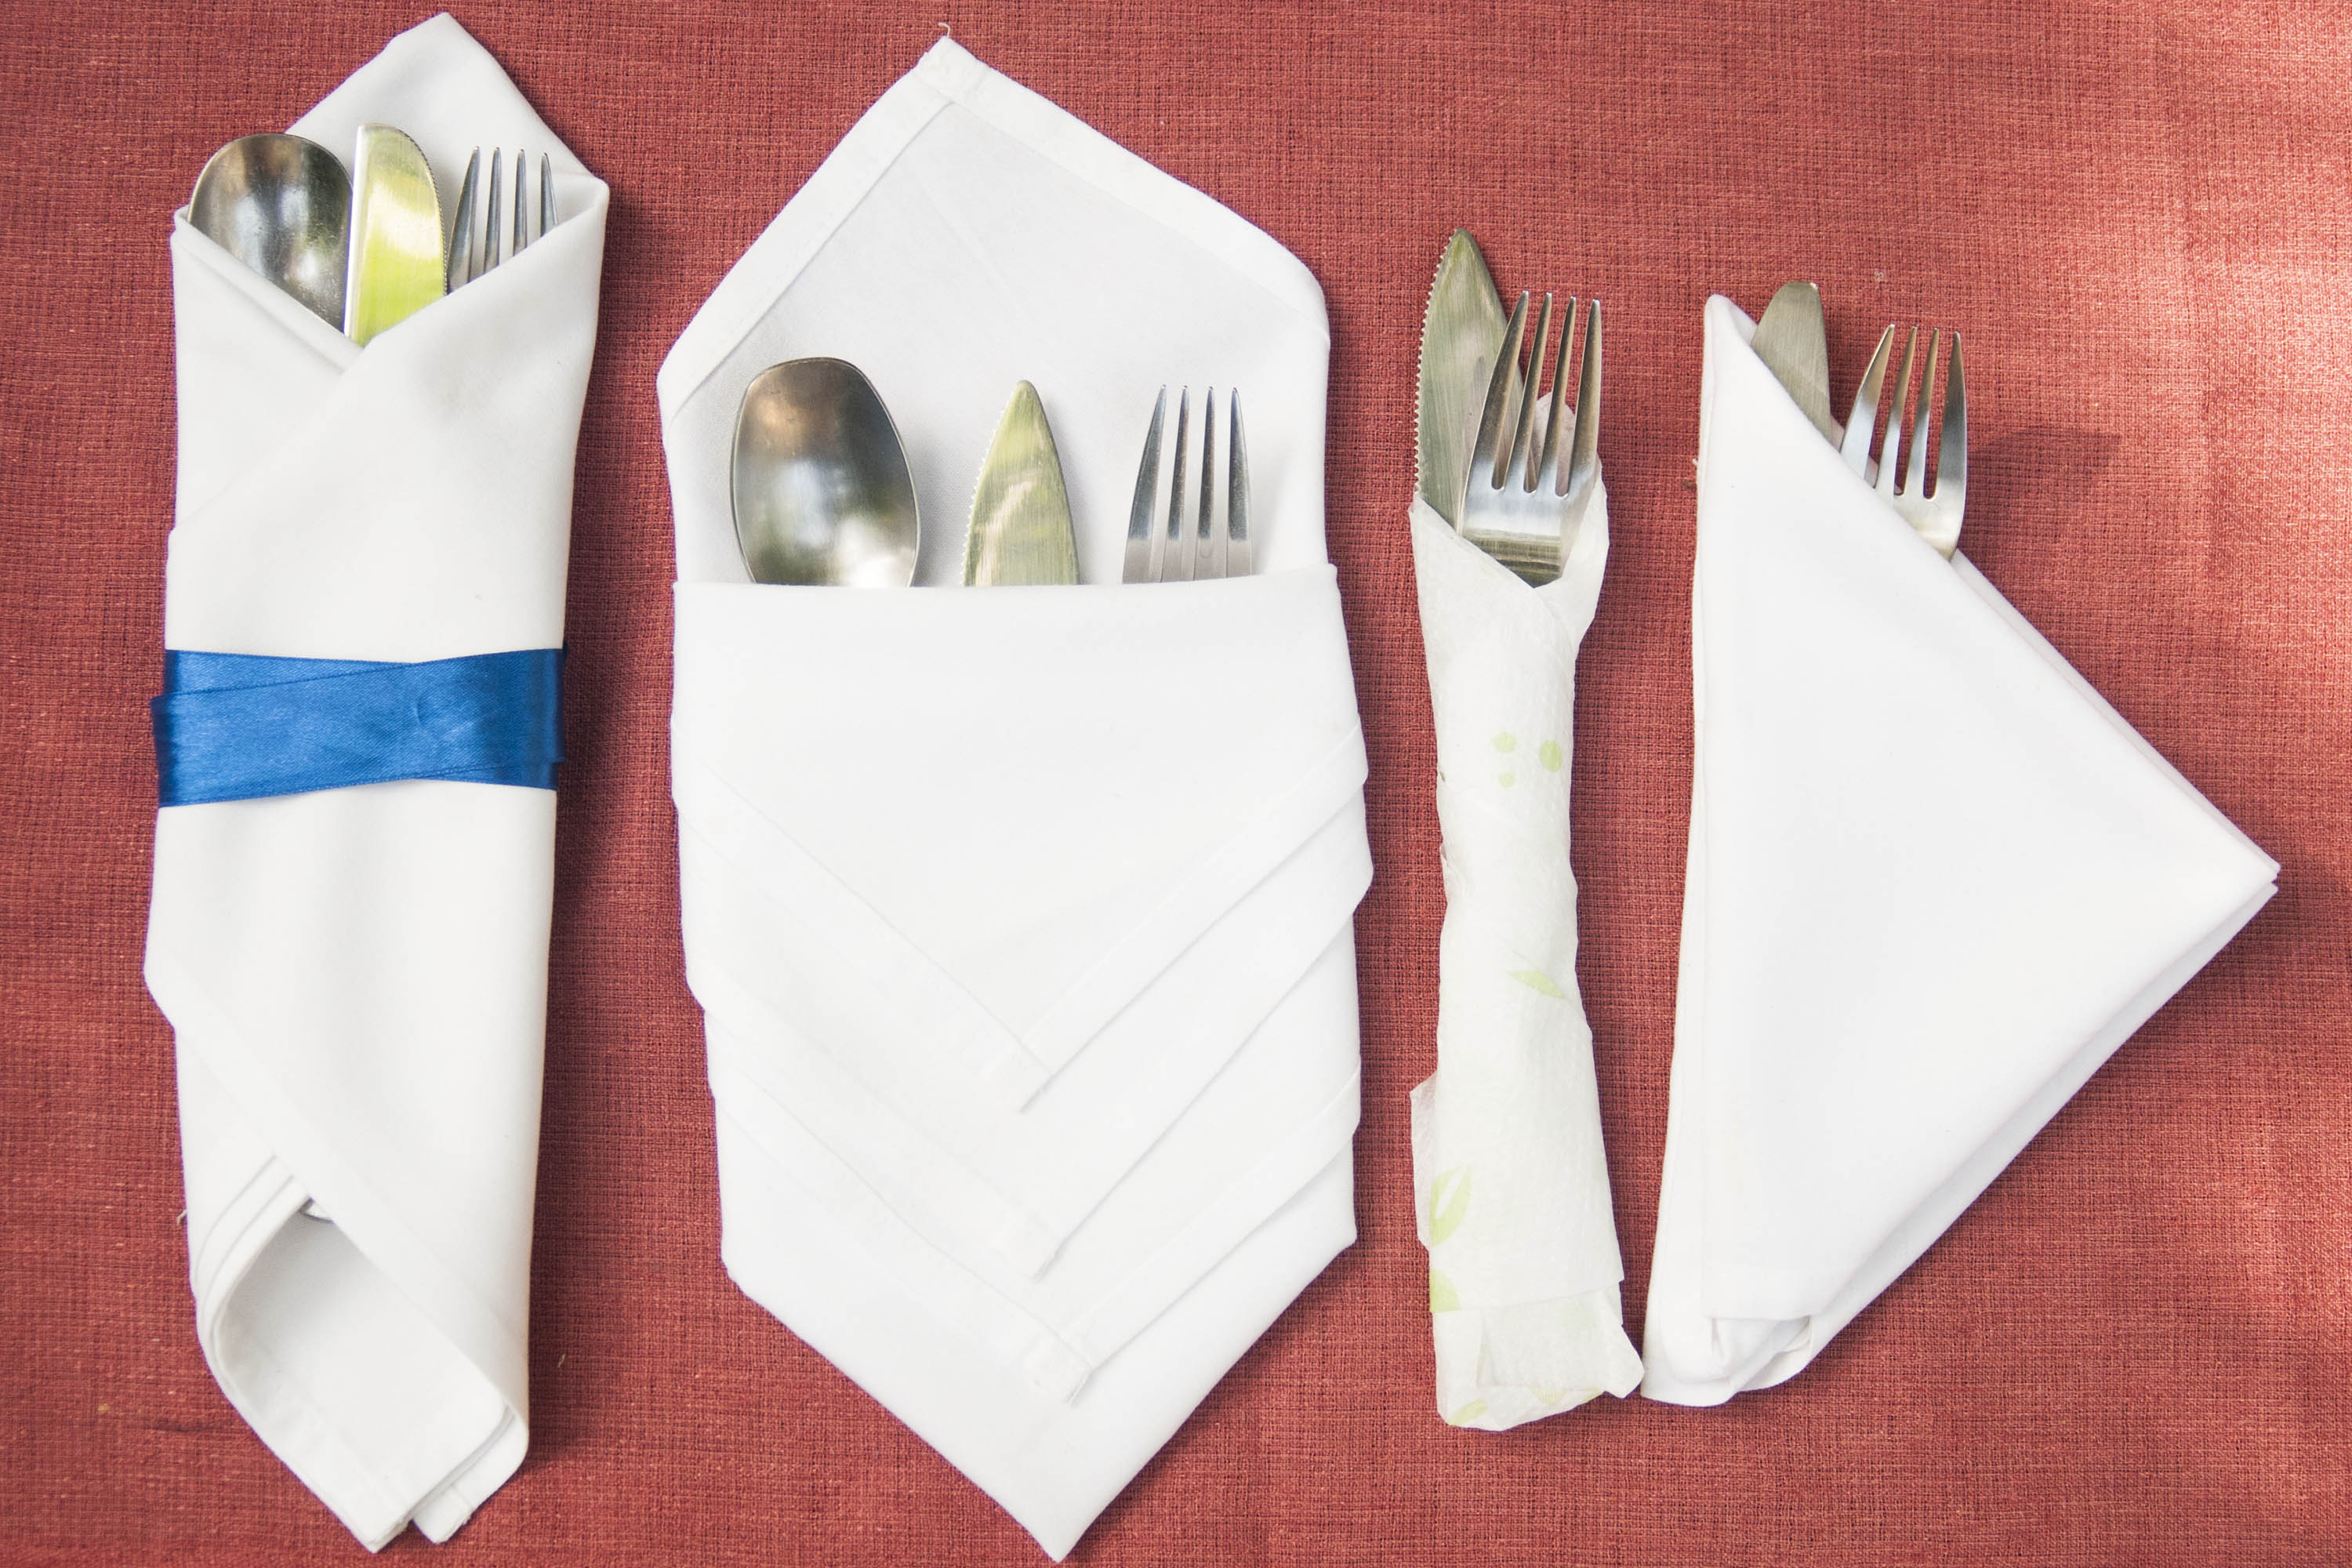 folding paper napkins Dinner-fold napkins if you're searching for a economical disposable with excellent linen-like qualities, look no farther hoffmaster® dinner napkins are soft and strong, seldom shredding like the average paper napkin.